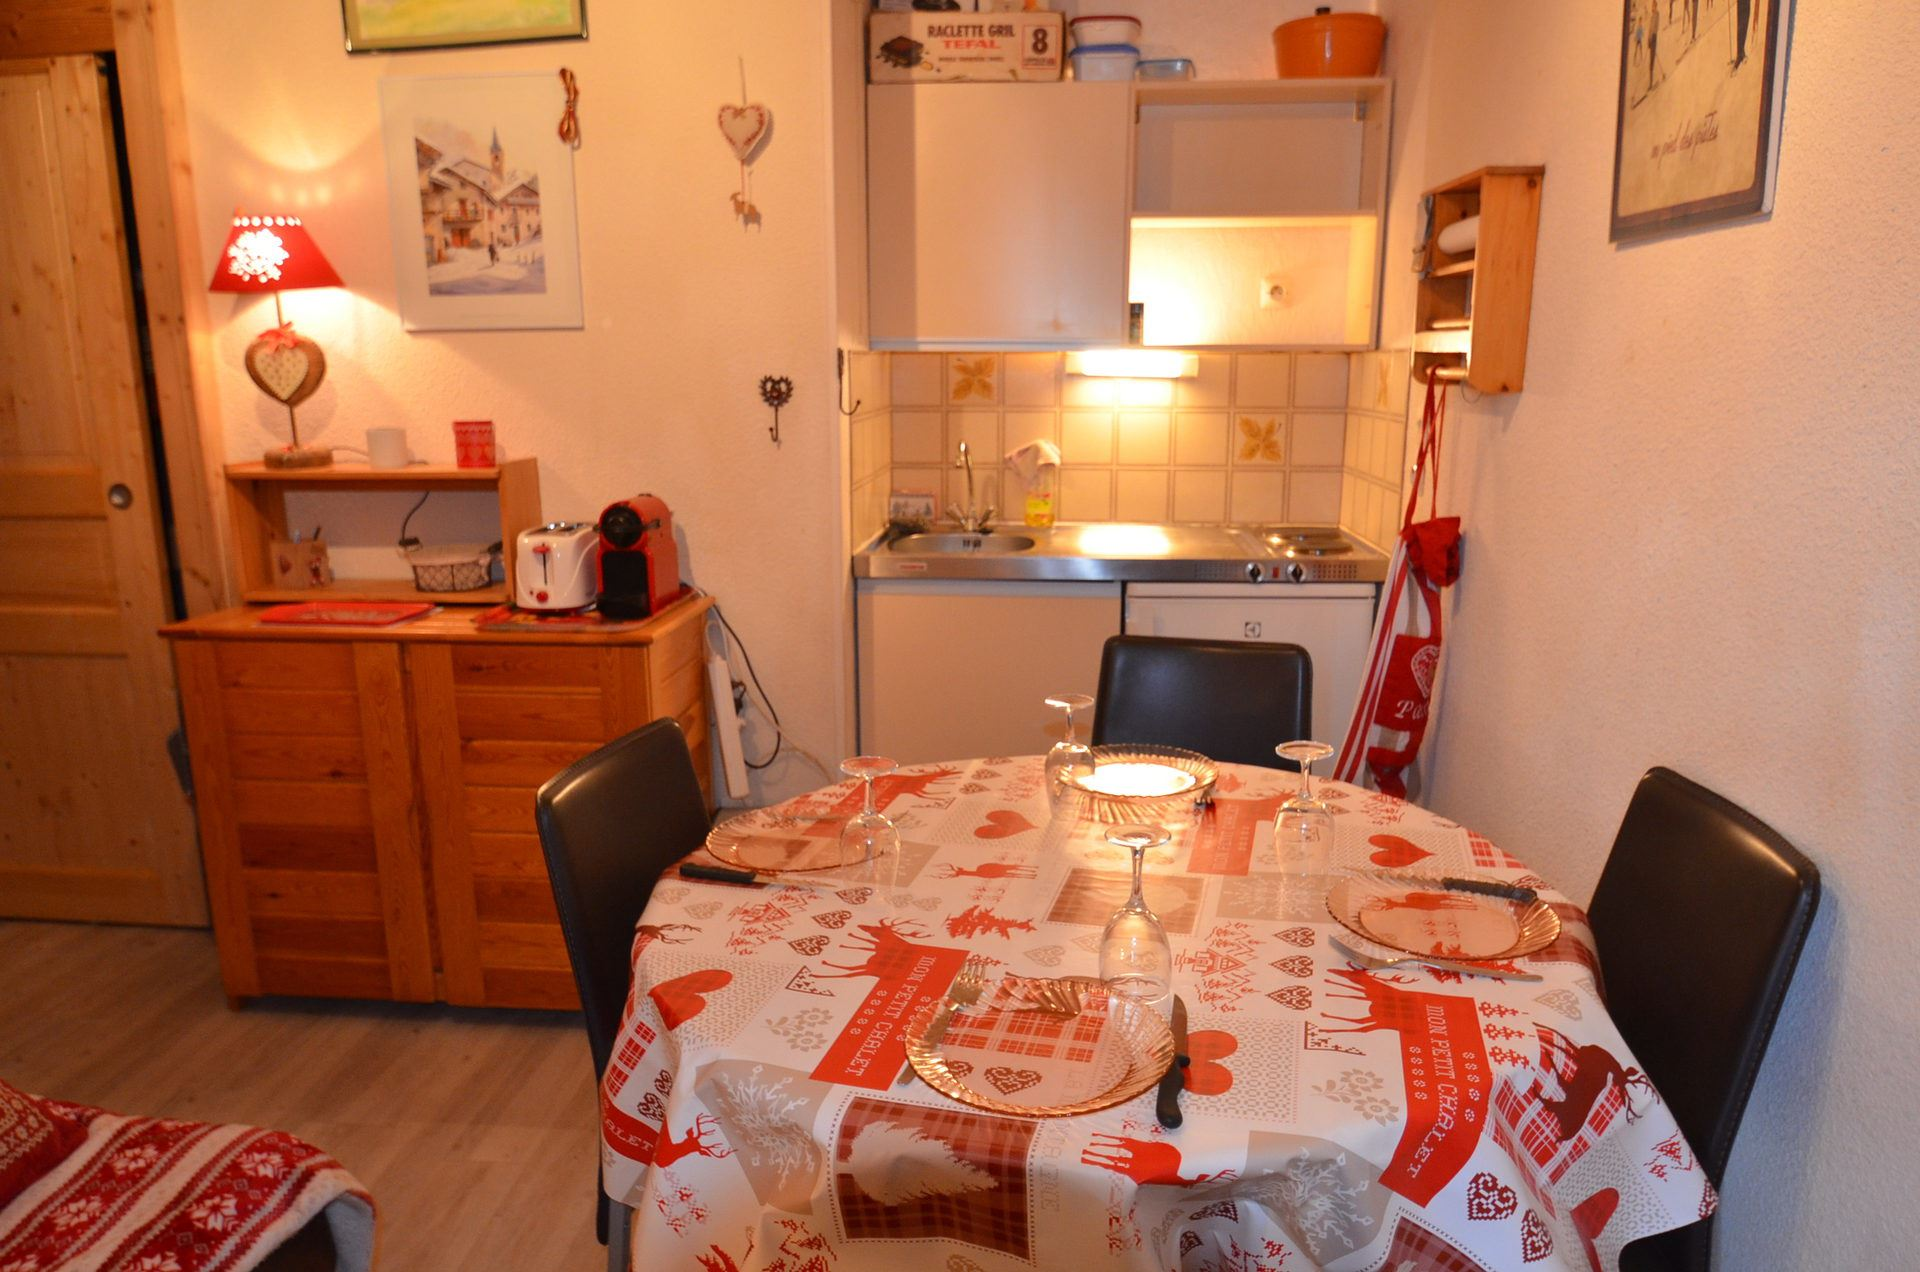 2 Rooms 4 Pers 200m from the slopes / ARGOUSIER 22